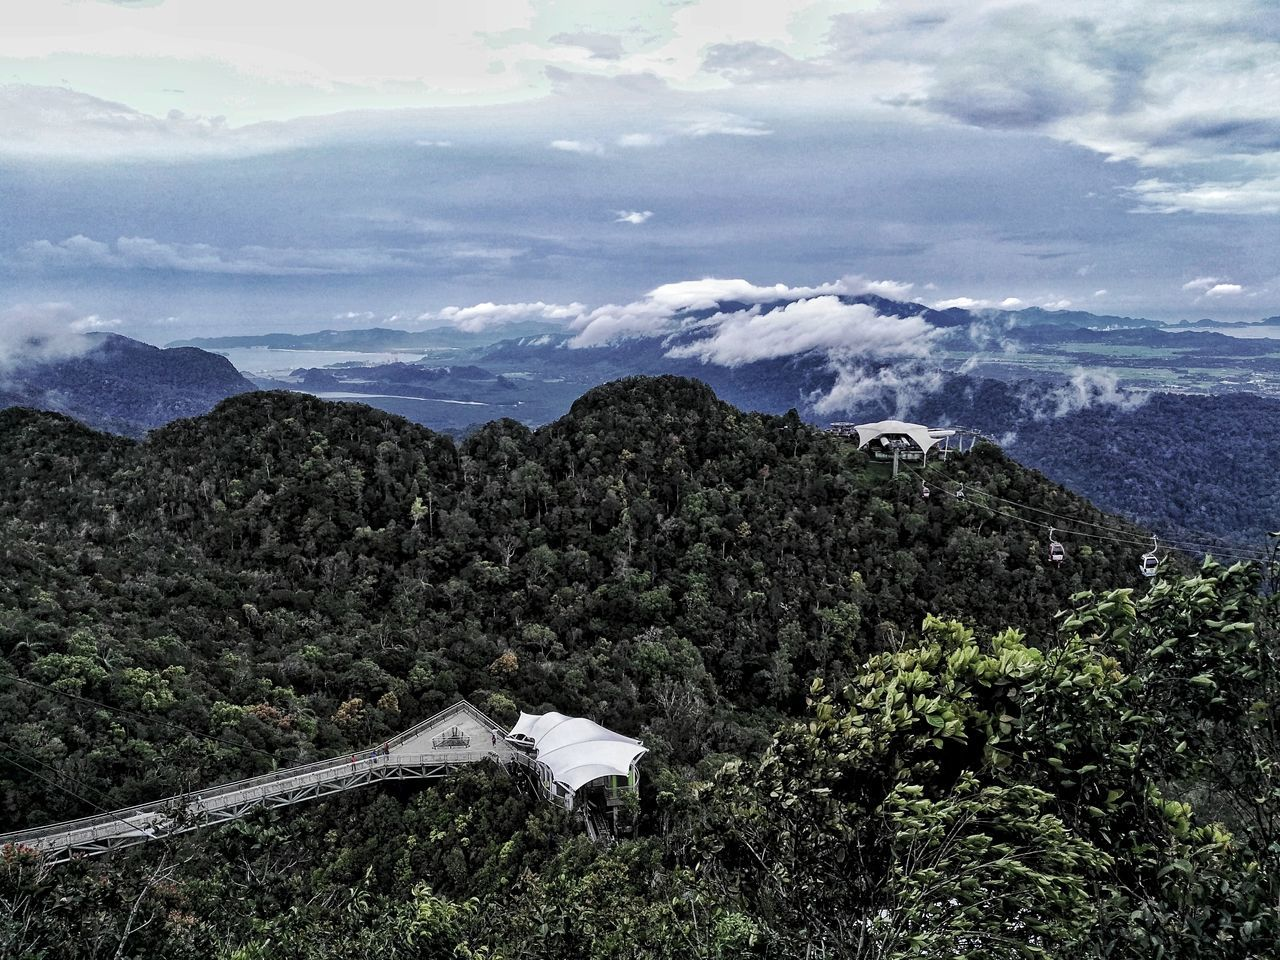 Nature Scenics Beauty In Nature Growth Mountain Agriculture Cloud - Sky Landscape Outdoors Sky Tree Plant Langkawi Cable Car Malaysia HuaweiGX8 Photooftheday Skybridge Langkawi Island Huawei Shots Huaweiphotography My Favorite Place My Favourite Place Freshness Tranquil Scene